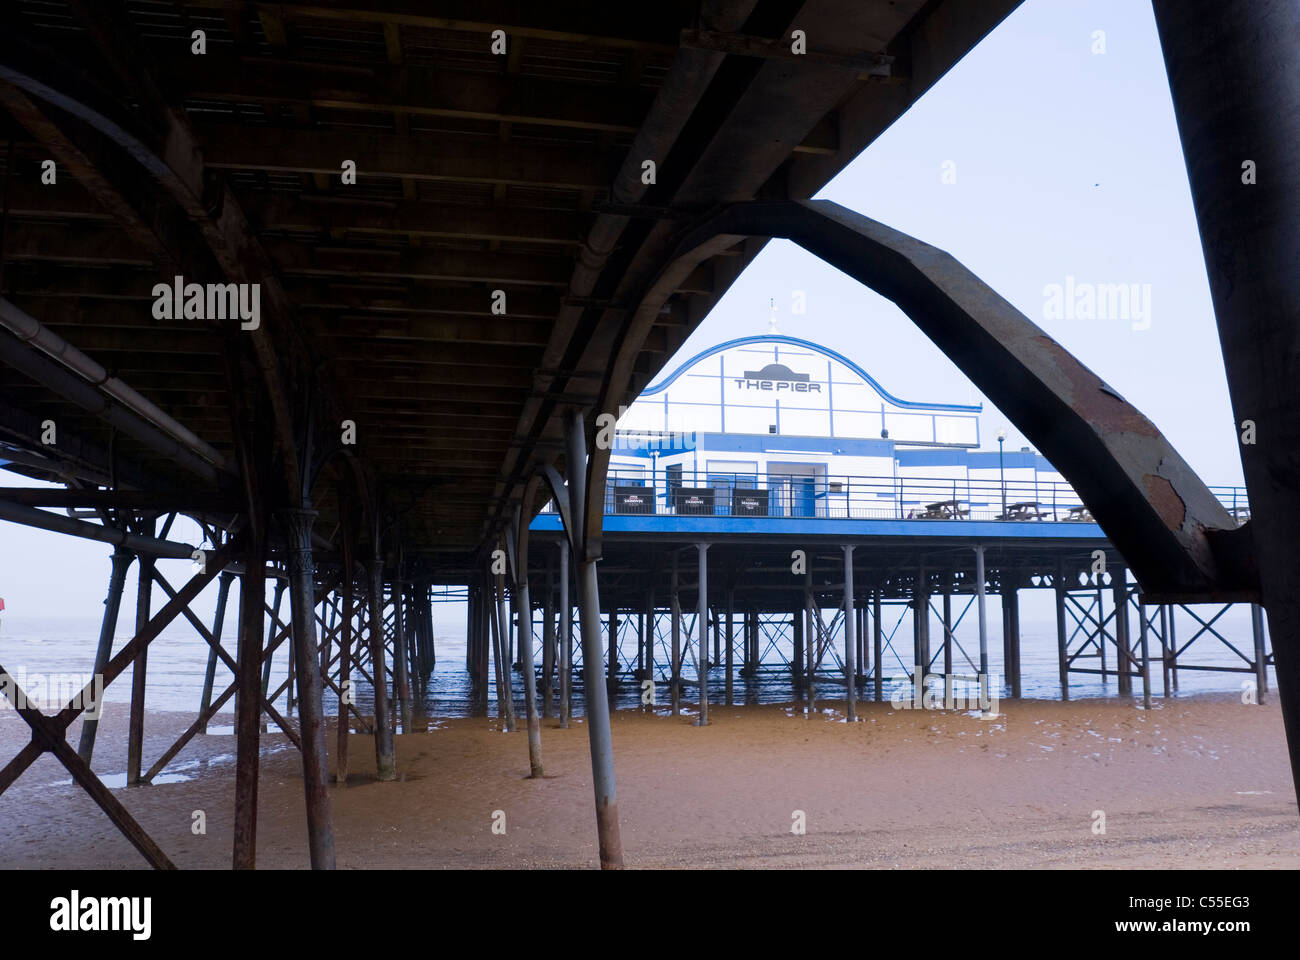 The Pier, Cleethorpes, Framed by Structural Support Steel Arch from Beneath the Pier, South Humberside, UK - Stock Image